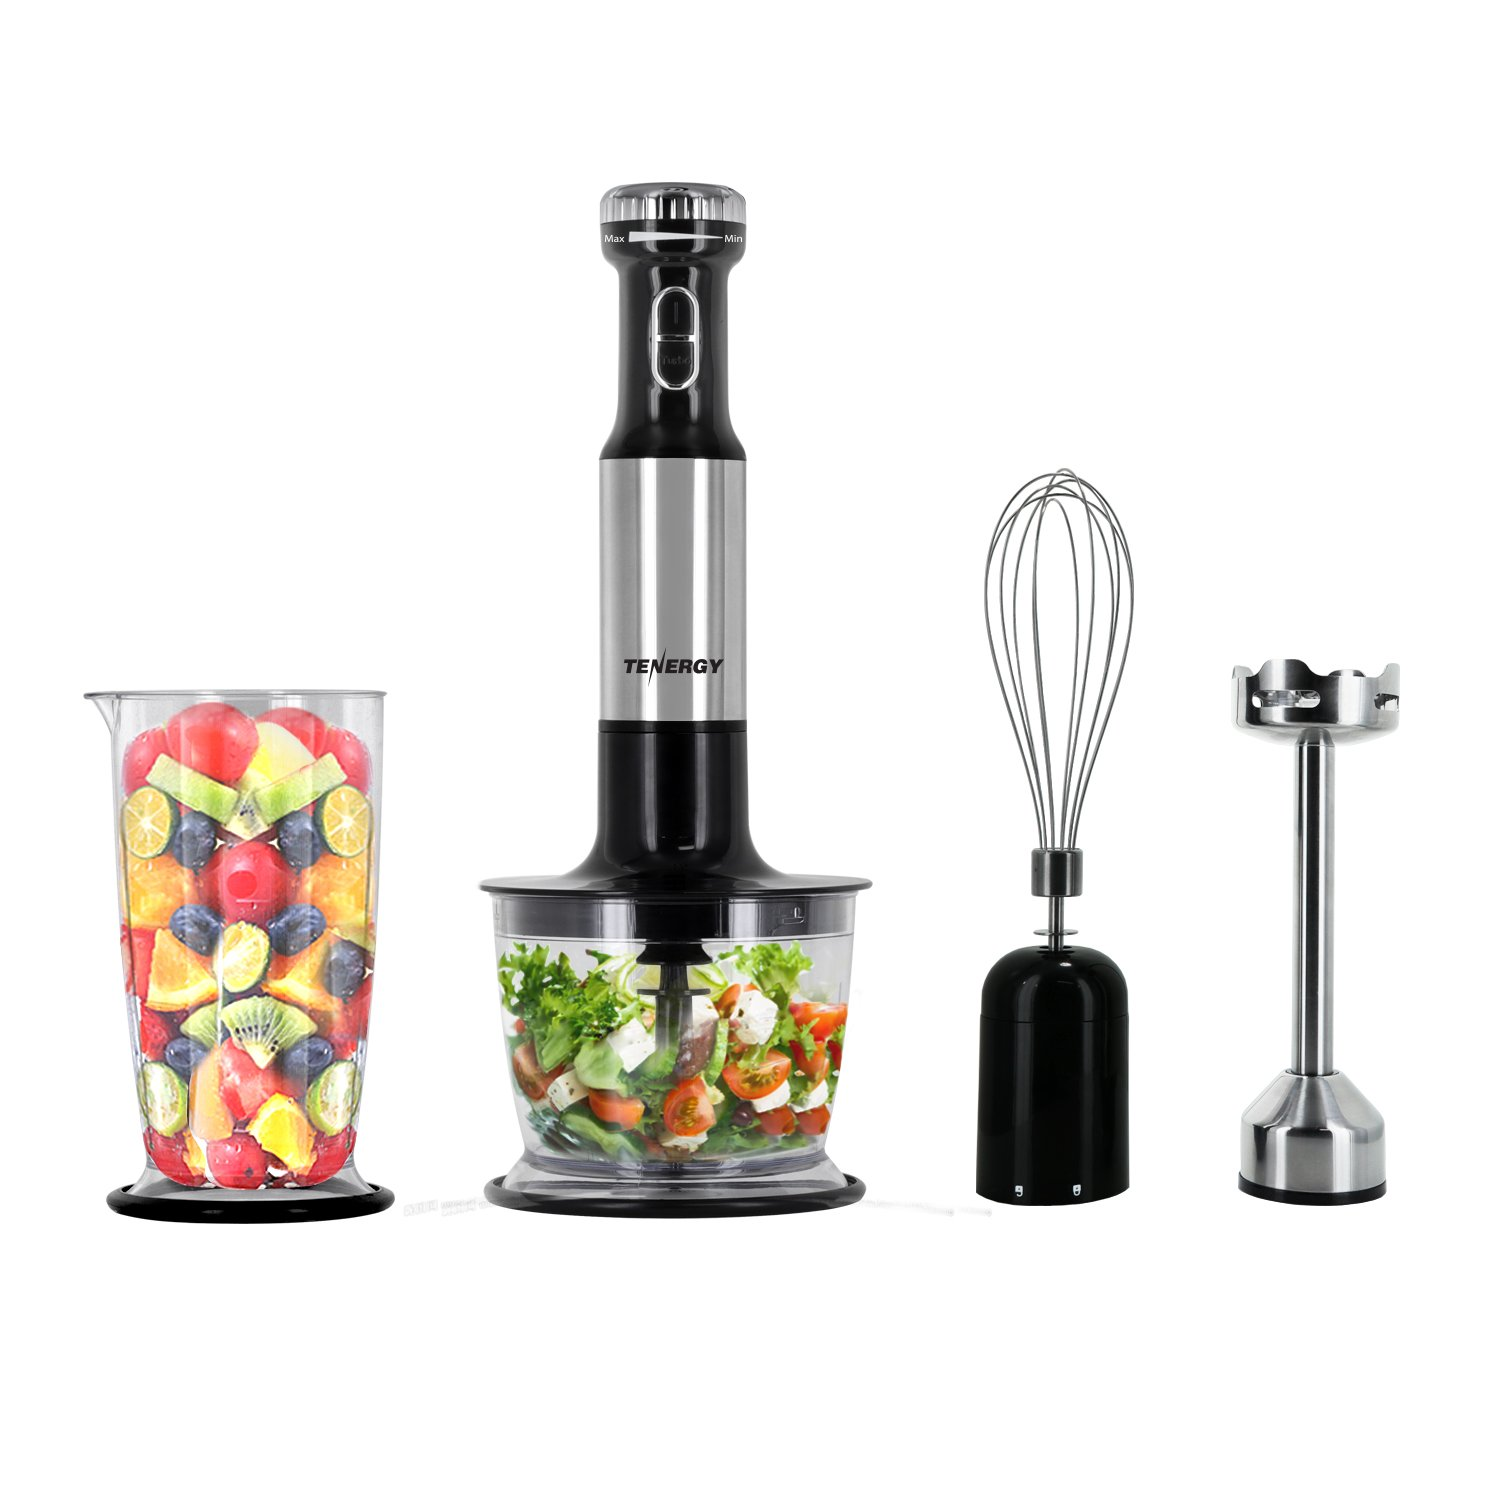 Tenergy Immersion Blender, 200W Multi-Speed Food Mixer Set with Stainless Steel Hand Blender, Chopper, Whisk, Beaker Attachment for Soup, Sauce, Baby Food, Purée and Emulsify by Tenergy (Image #1)